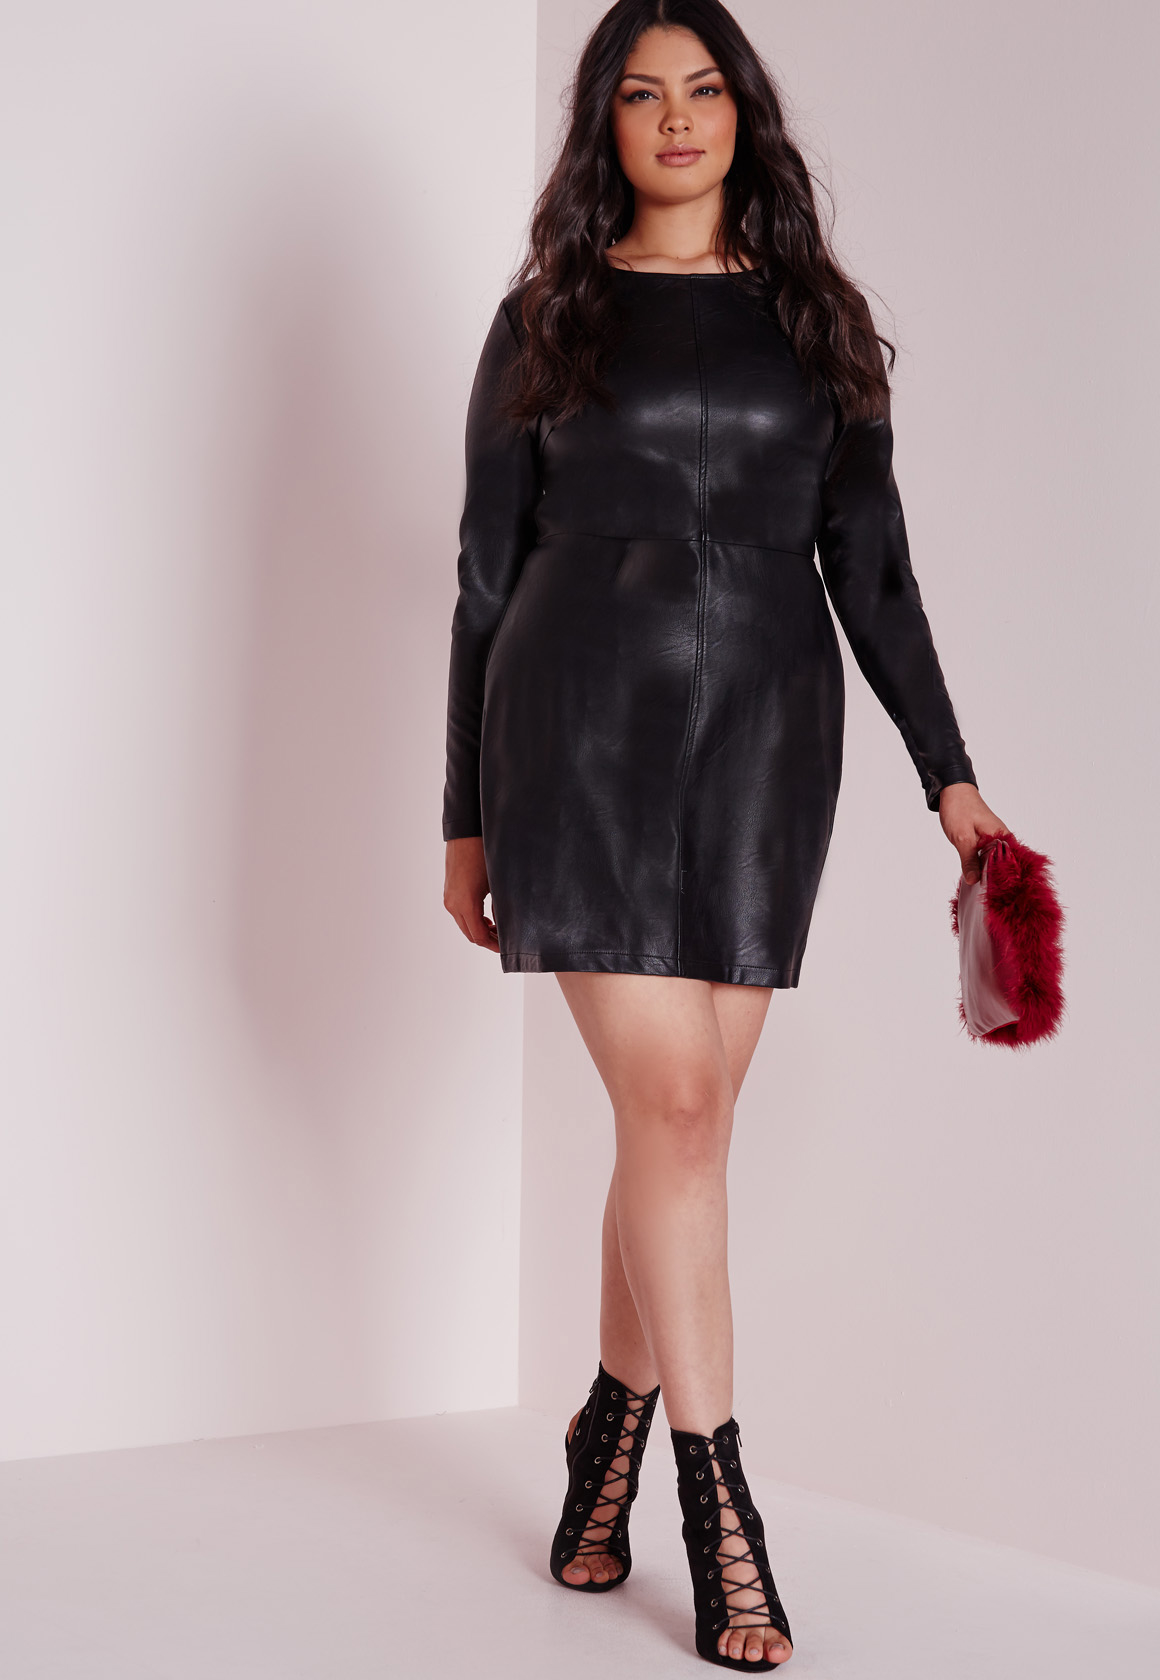 a59c31640ccae Plus Size Dress Leather – Fashion dresses